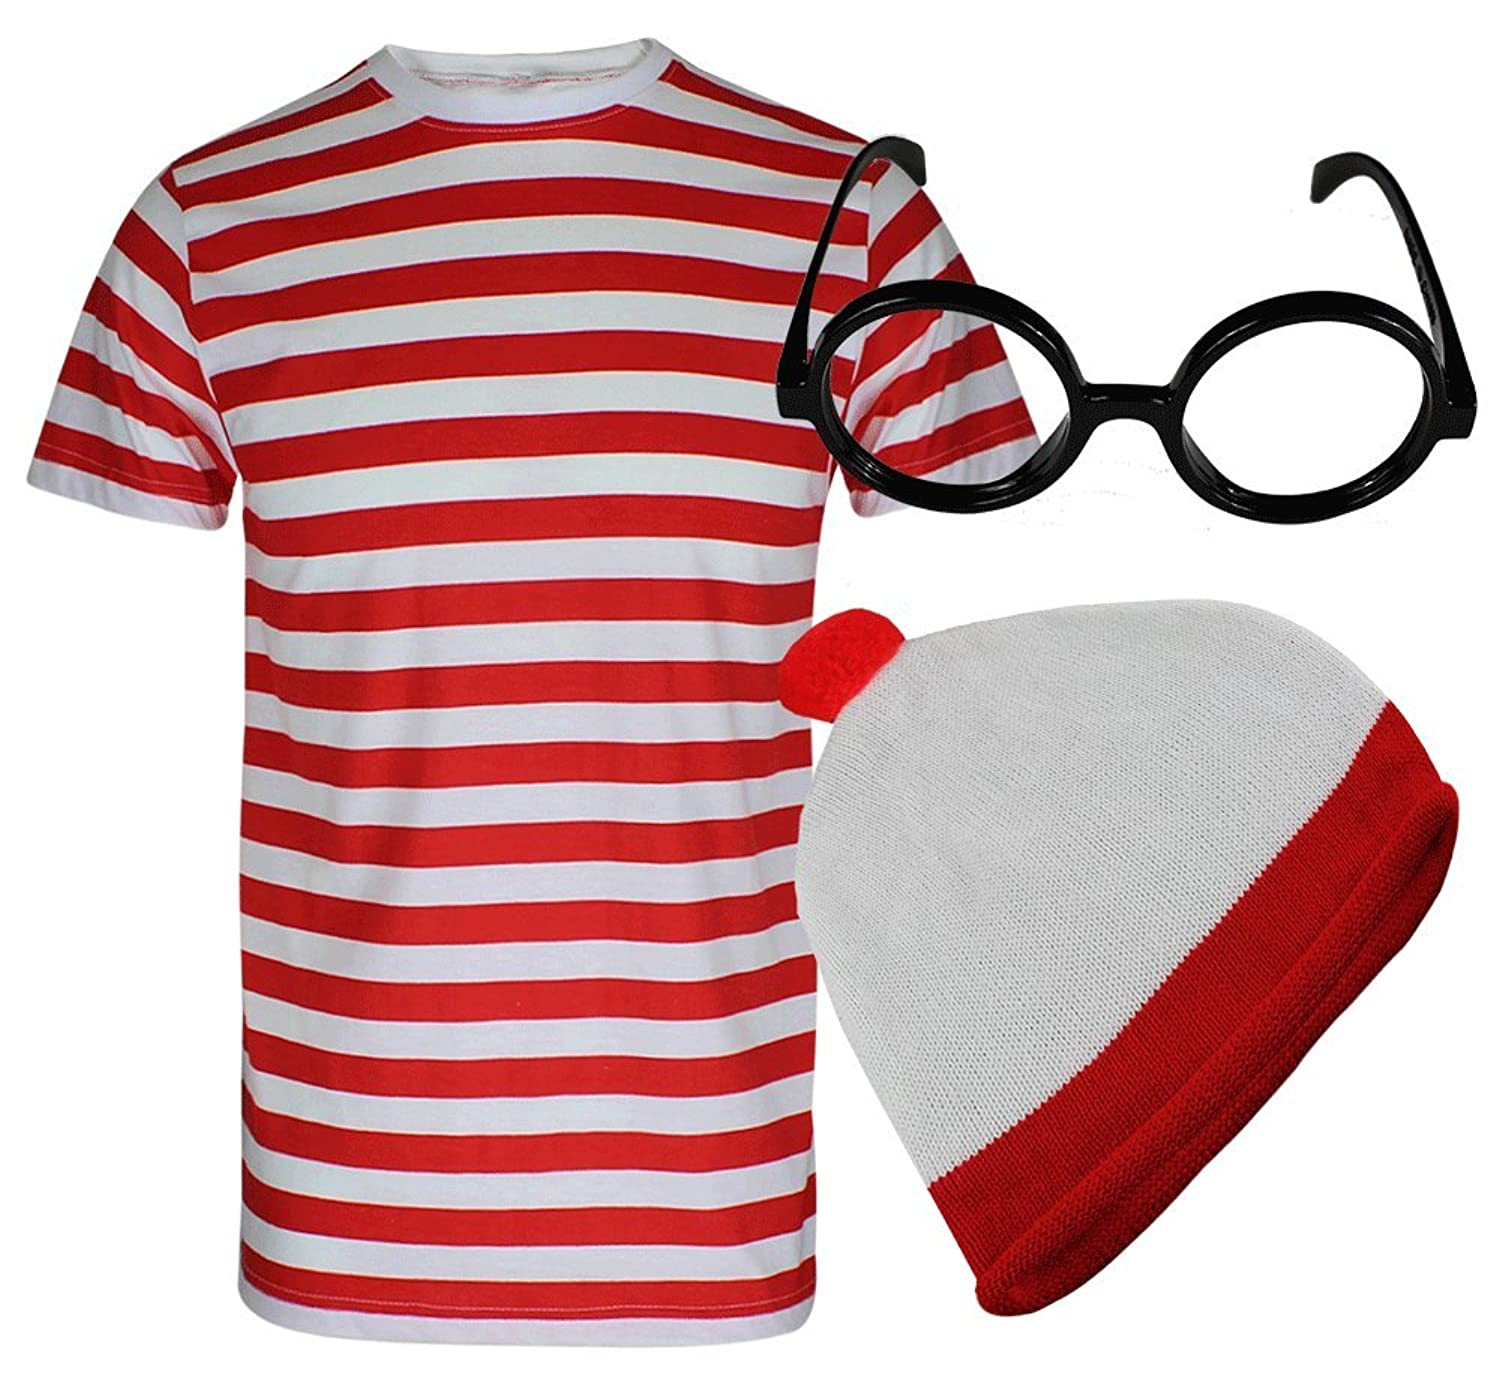 MENS BOYS LADIES RED AND WHITE STRIPED T SHIRT TSHIRT TOP FANCY ...